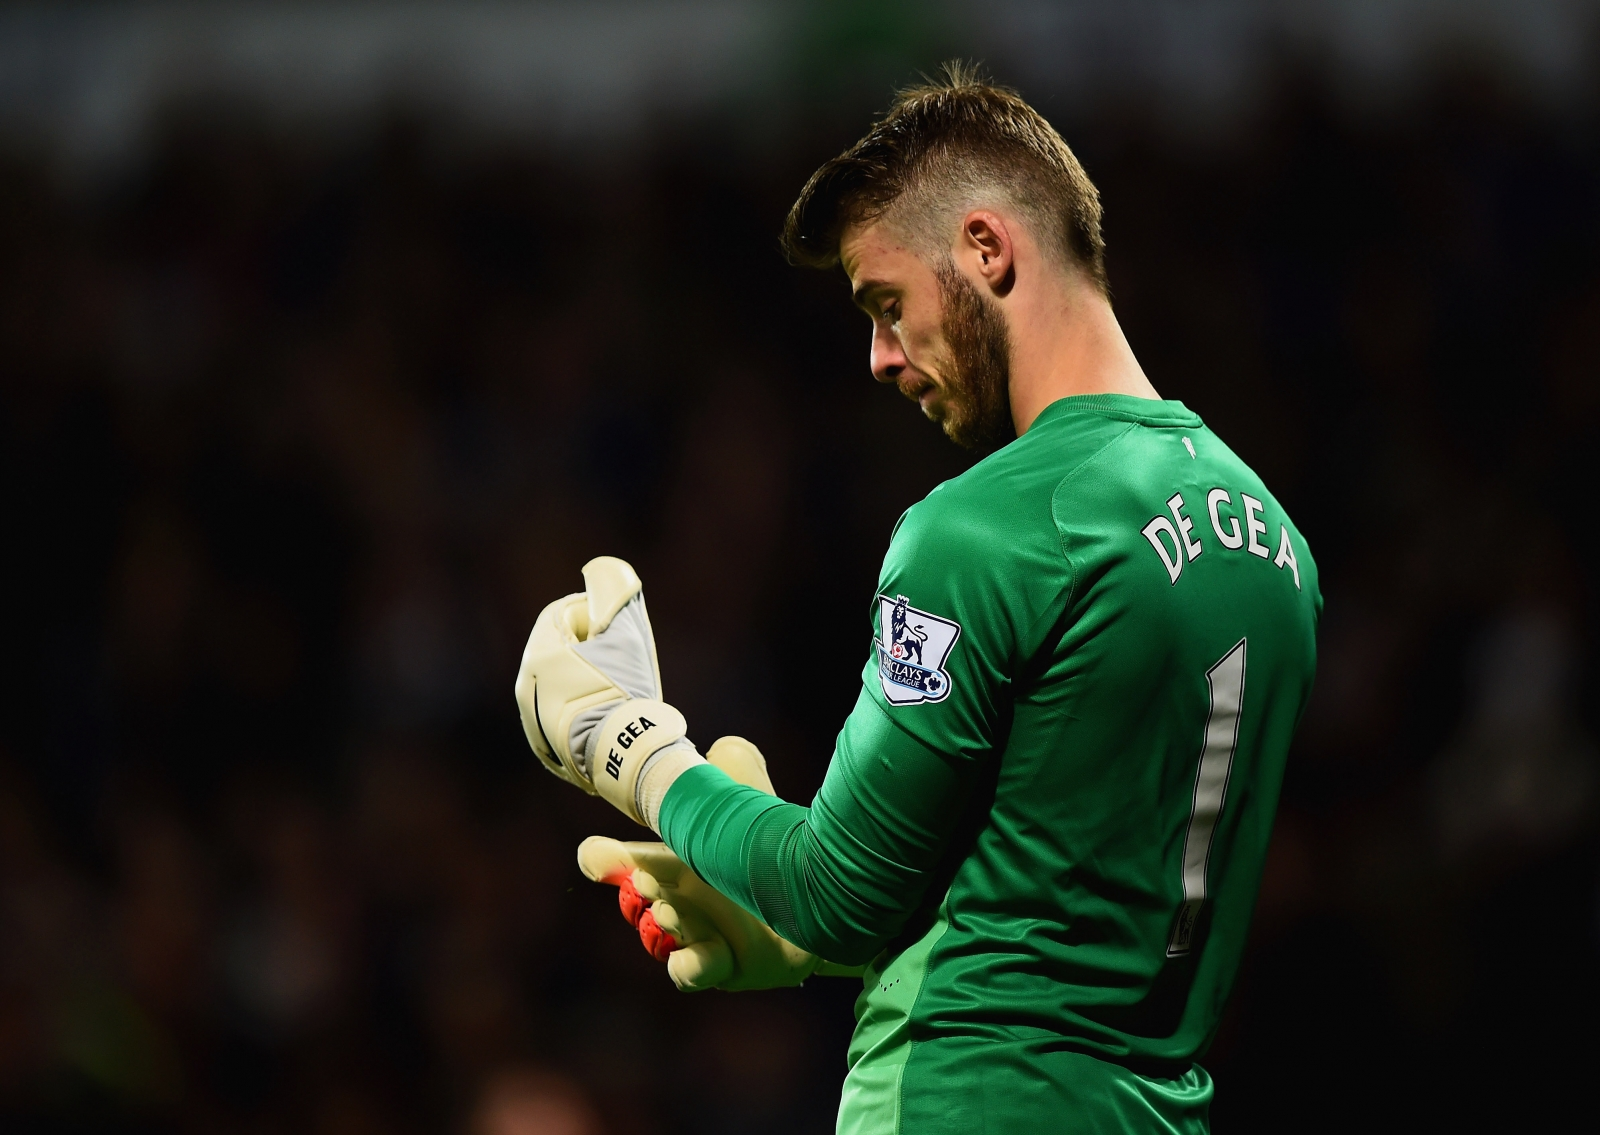 Download Spain Soccer David De Gea Free Hd Mobile Jpg